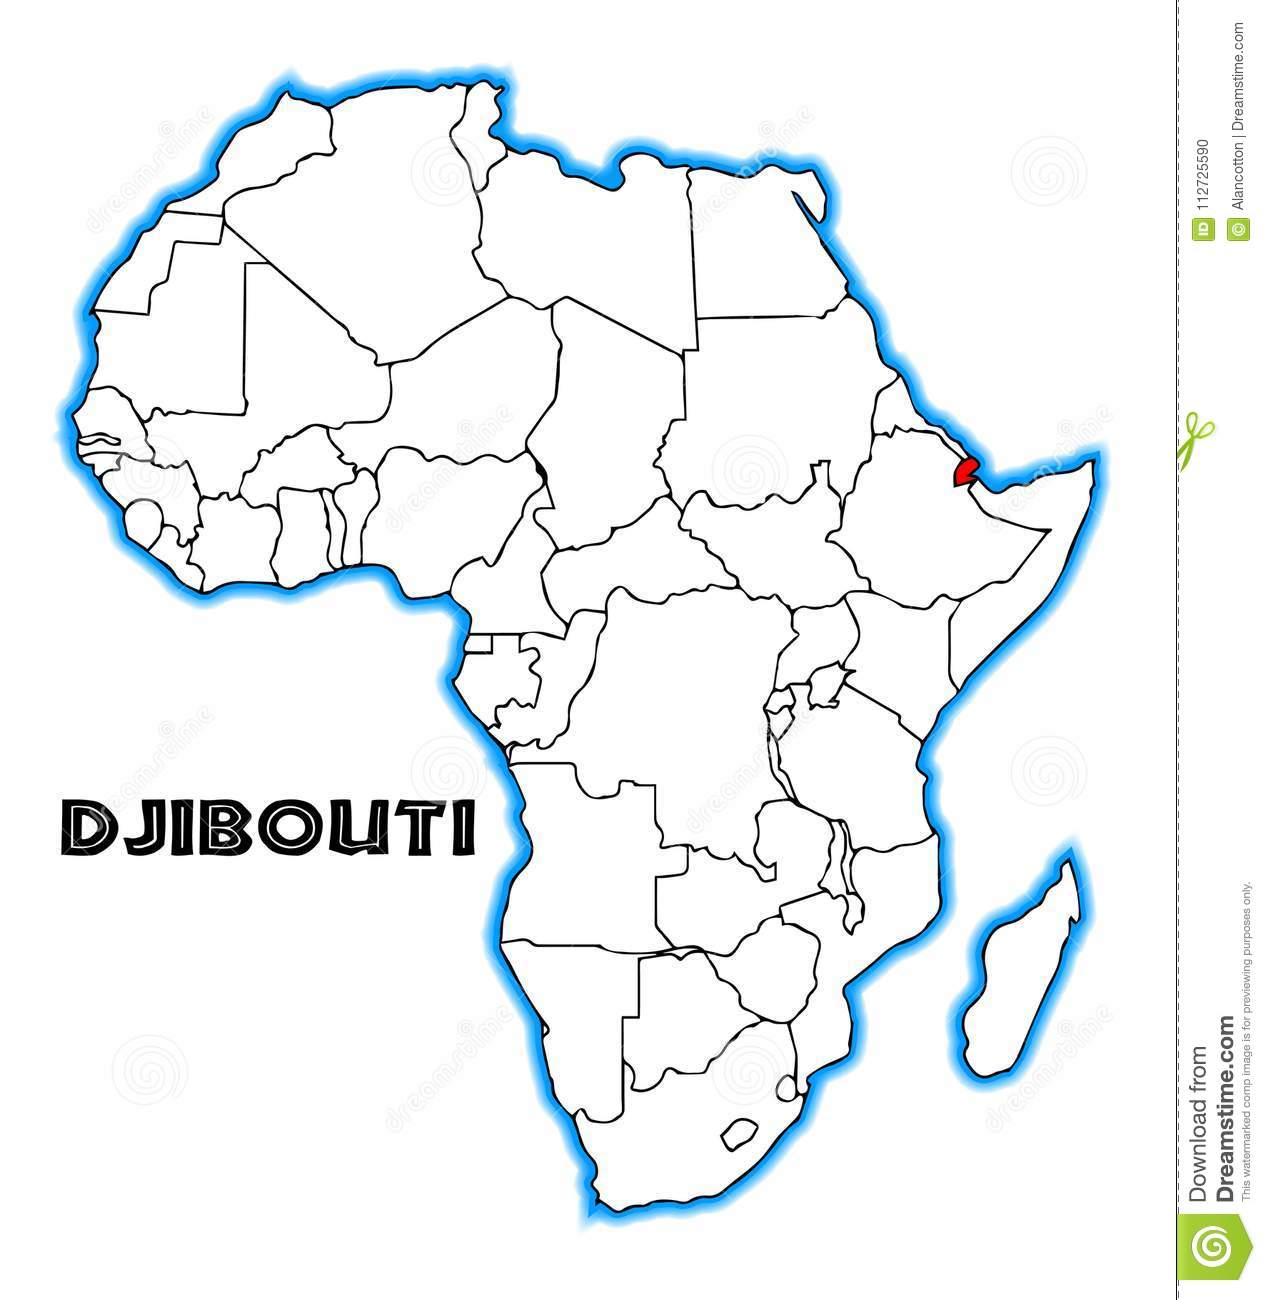 Djibouti On Africa Map.Djibouti Africa Map Stock Illustration Illustration Of Outline